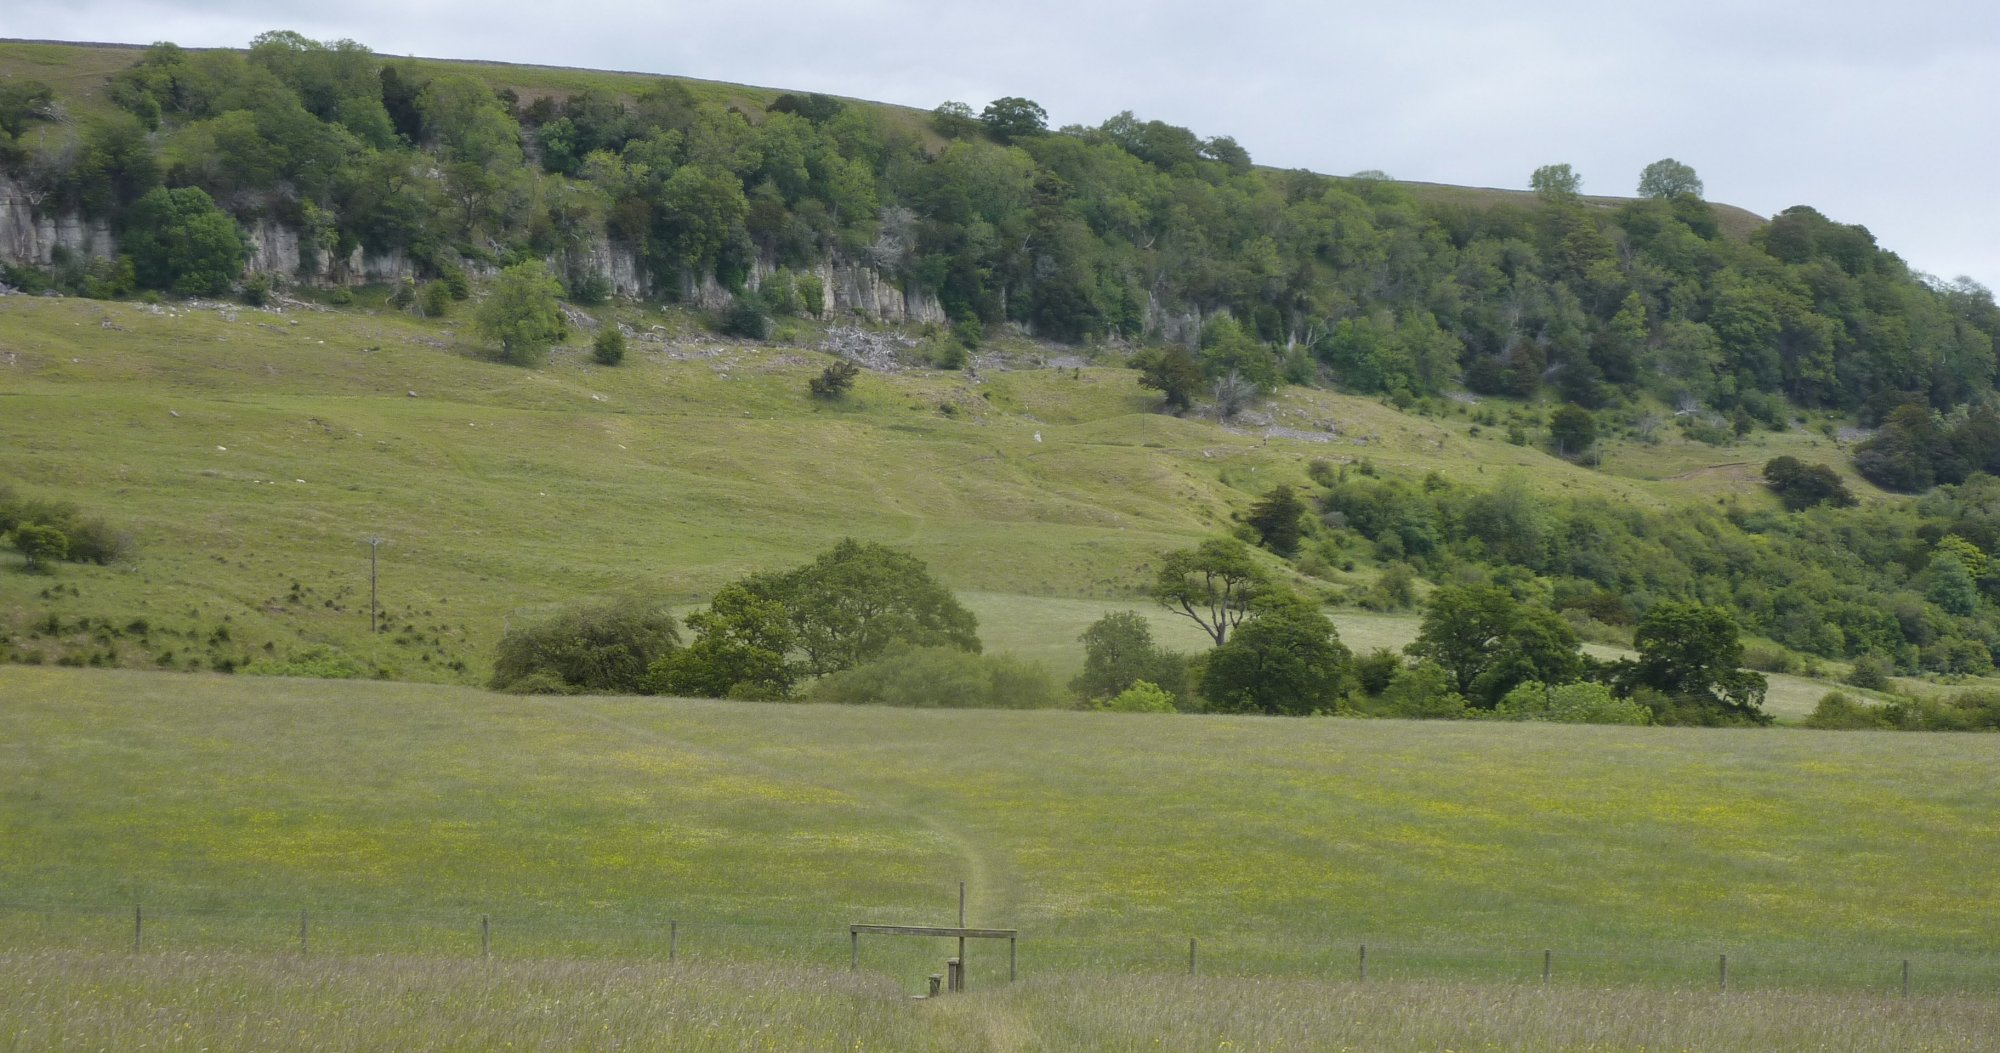 Looking back across the fields to Applegarth Scar